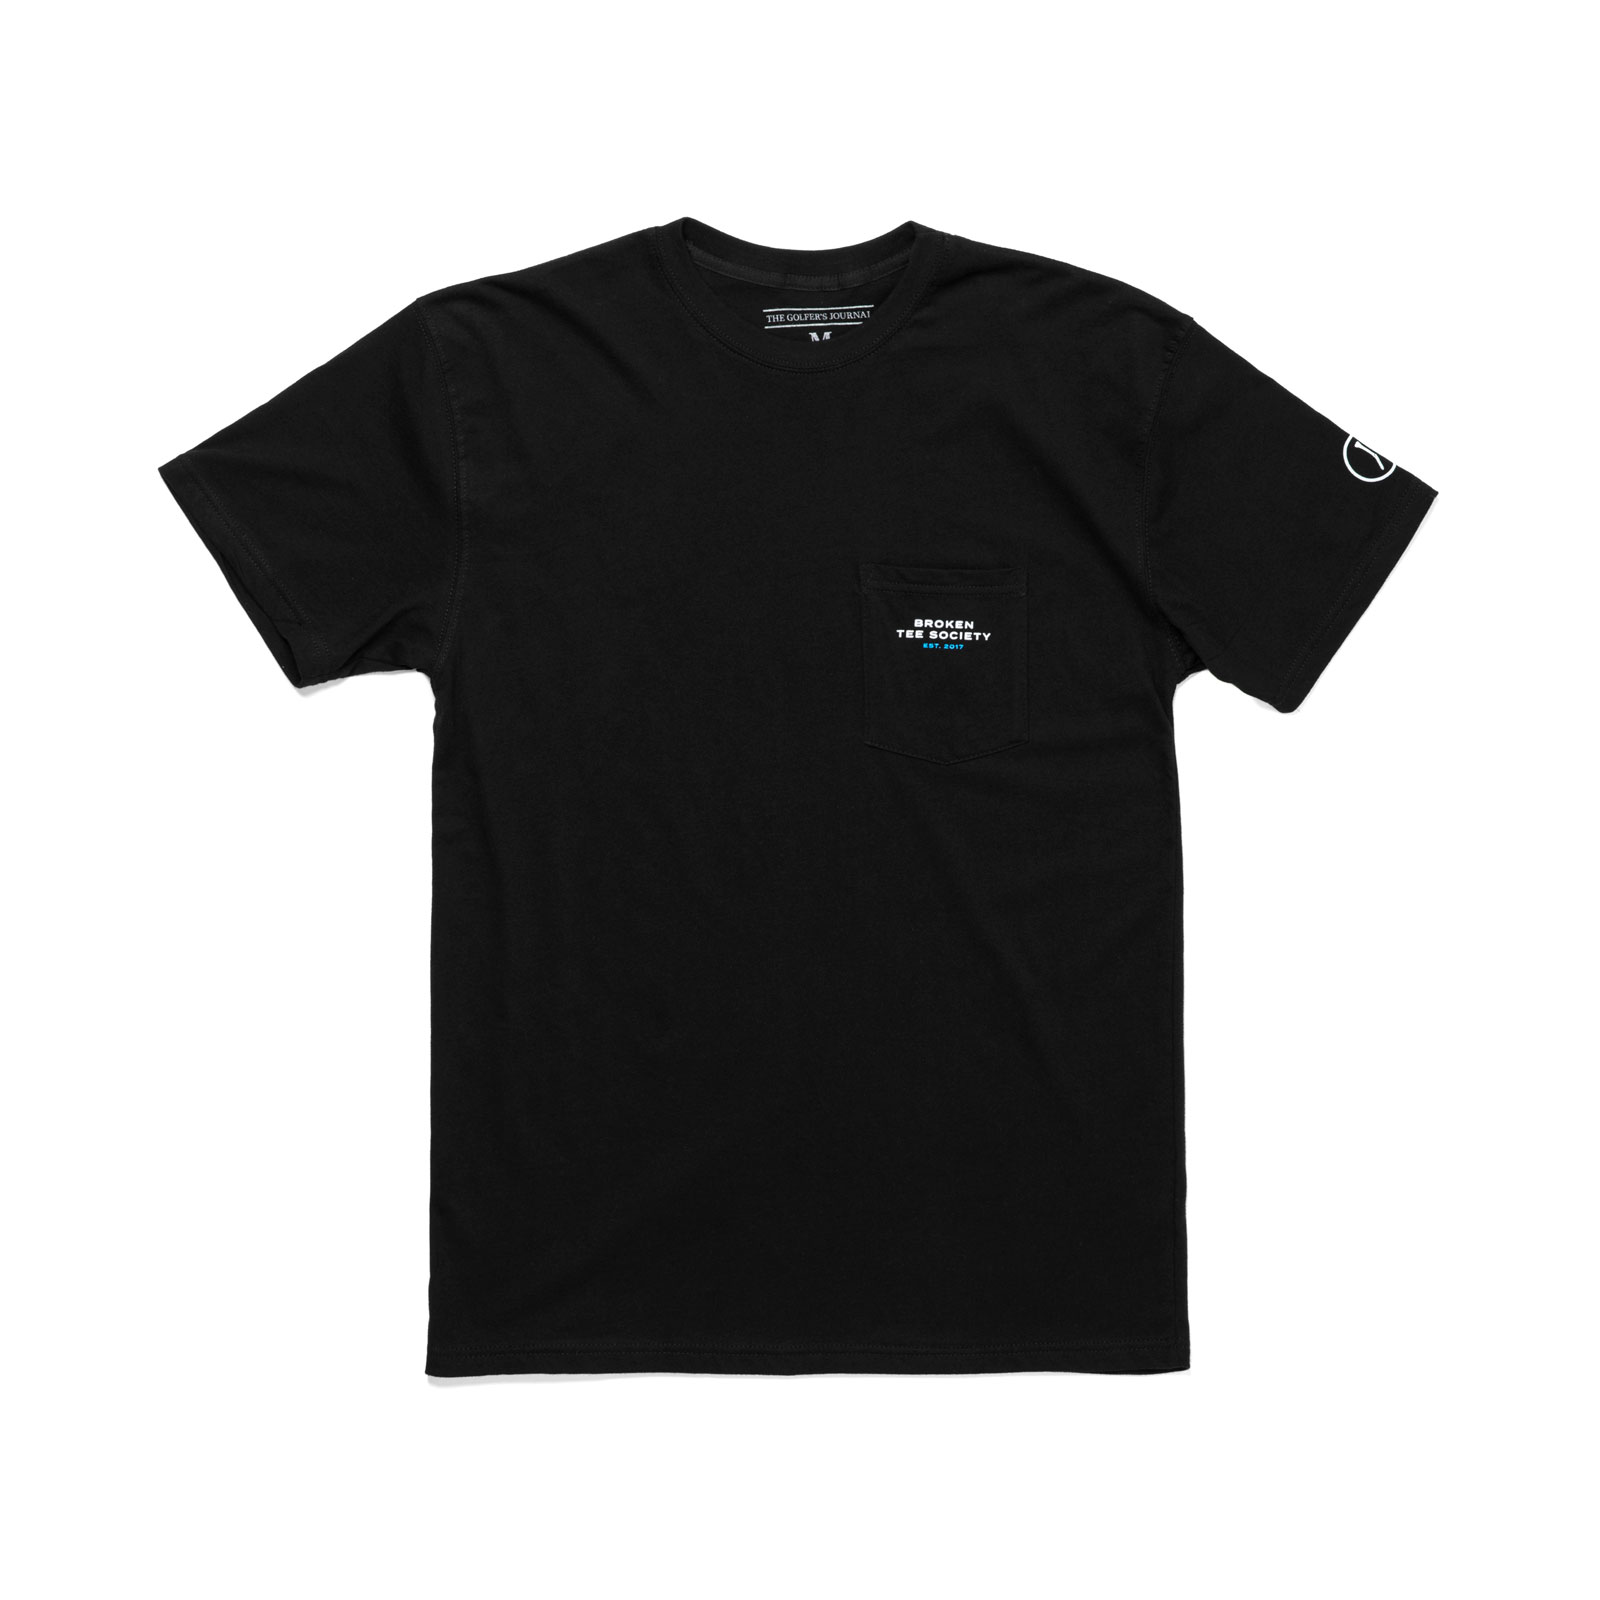 The Broken Tee Pocket T